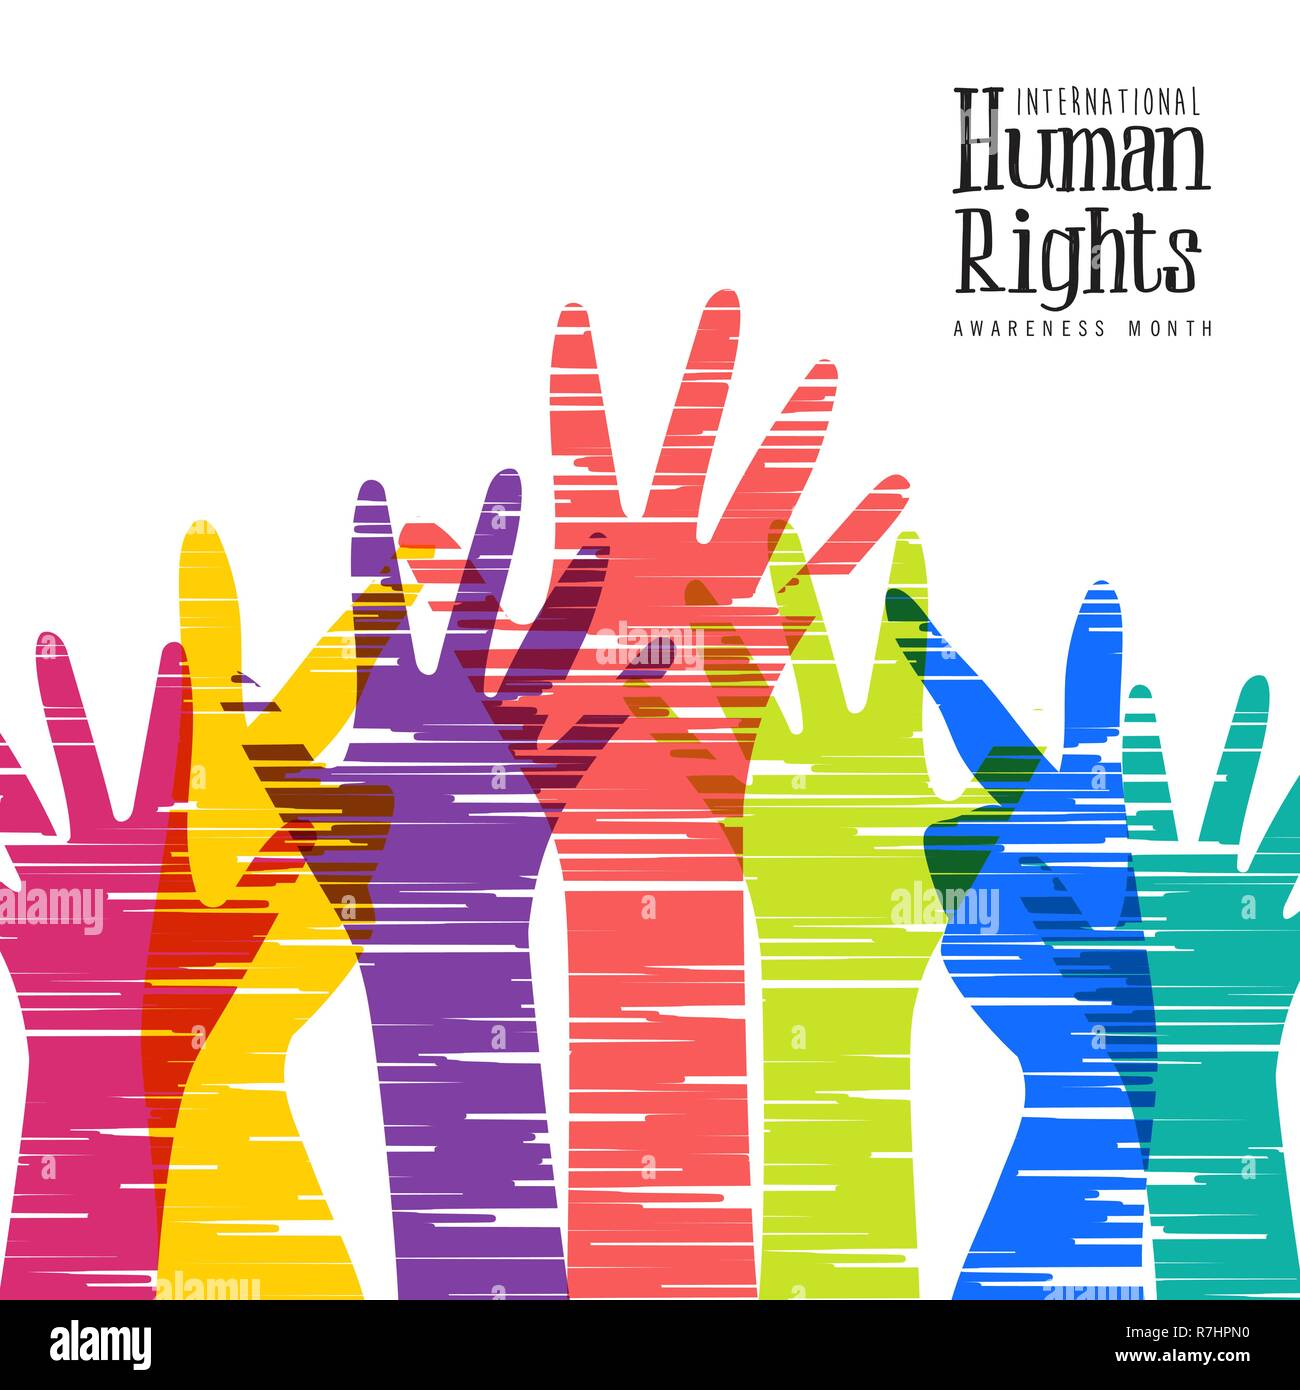 5bc9631f580d International Human Rights awareness month illustration for global equality  and peace with colorful people hands